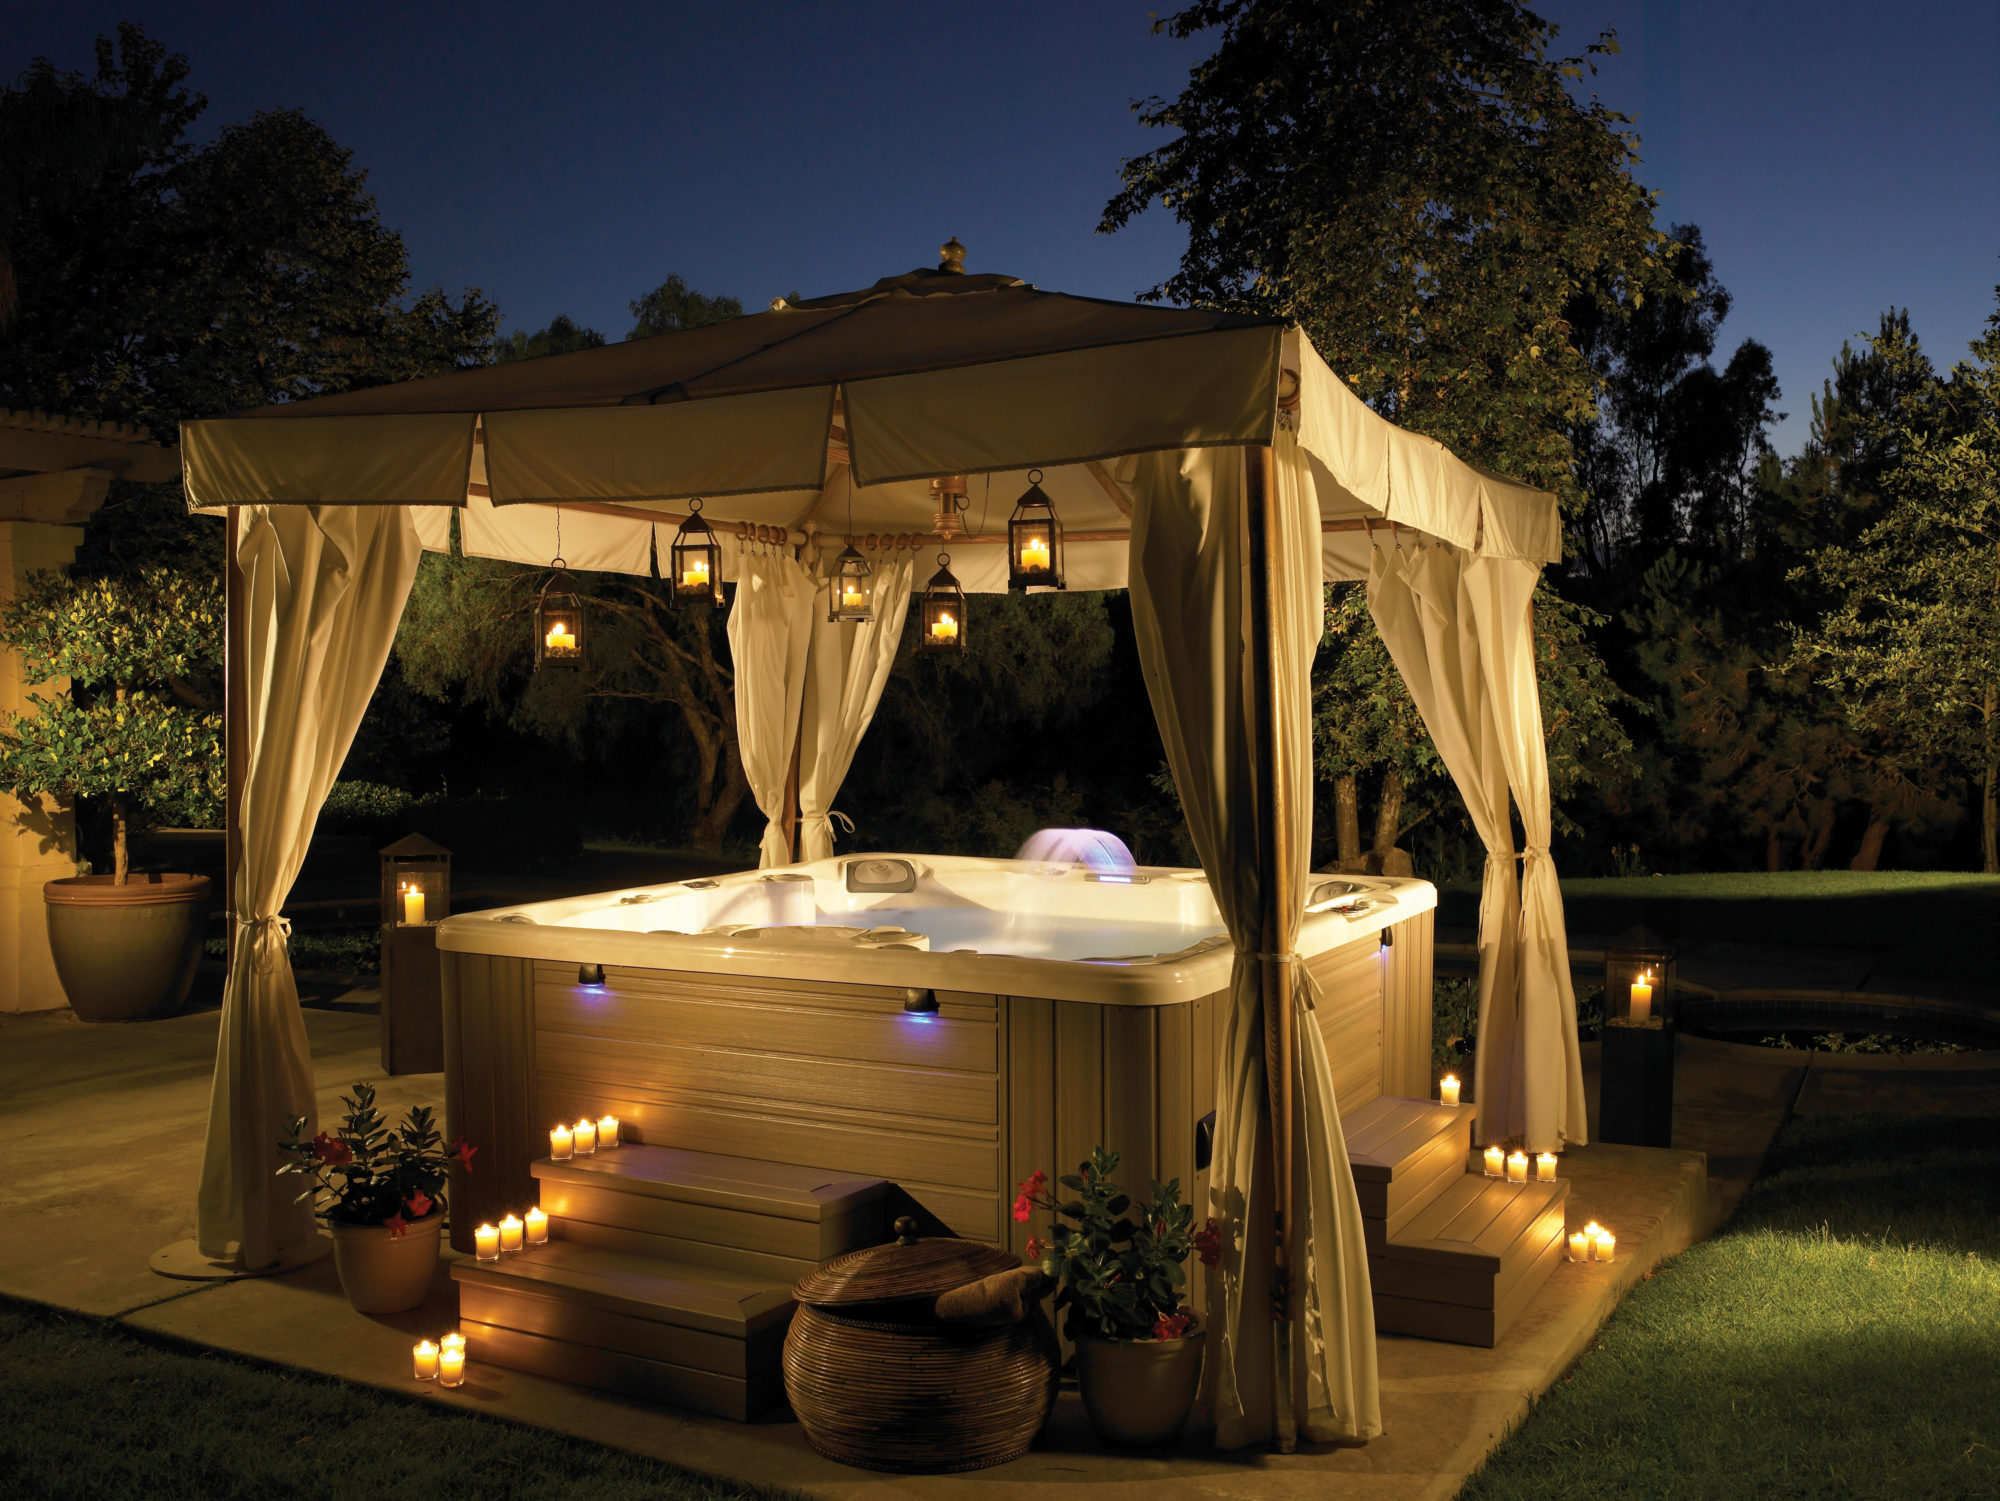 Caldera Spas Hot Tubs Washington DC